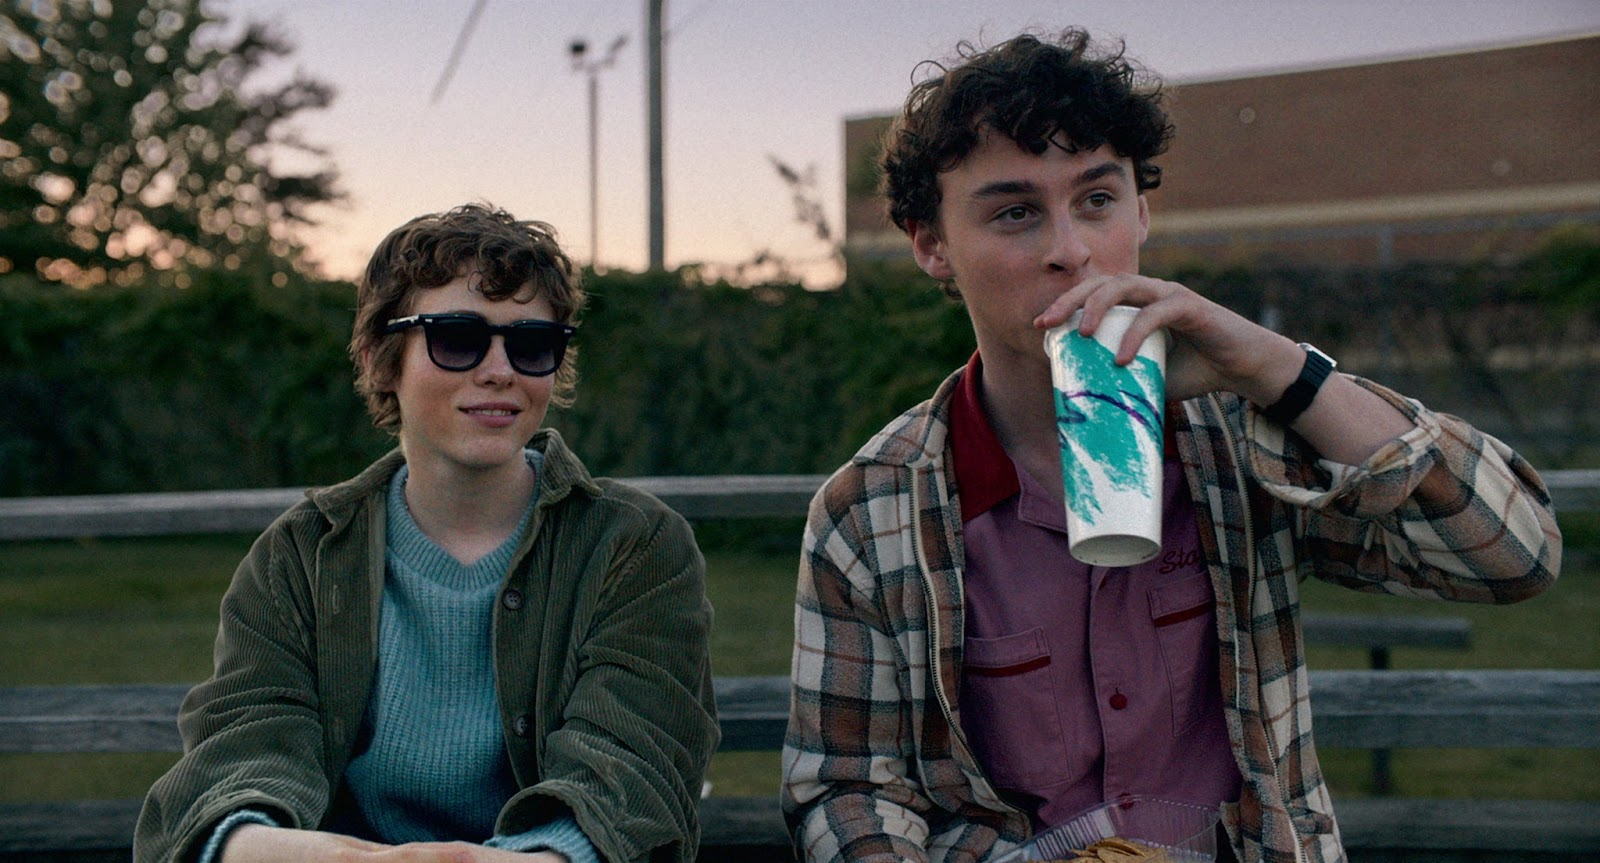 I Am Not Okay With This. Syd (Sophia Lillis) and her neighbour Stan (Wyatt Oleff) sit beside each other on a bench under an evening sky. Syd has sunglasses on and smirks off into the distance, and Stan gazes in the same direction as he sips from a paper soda cup.